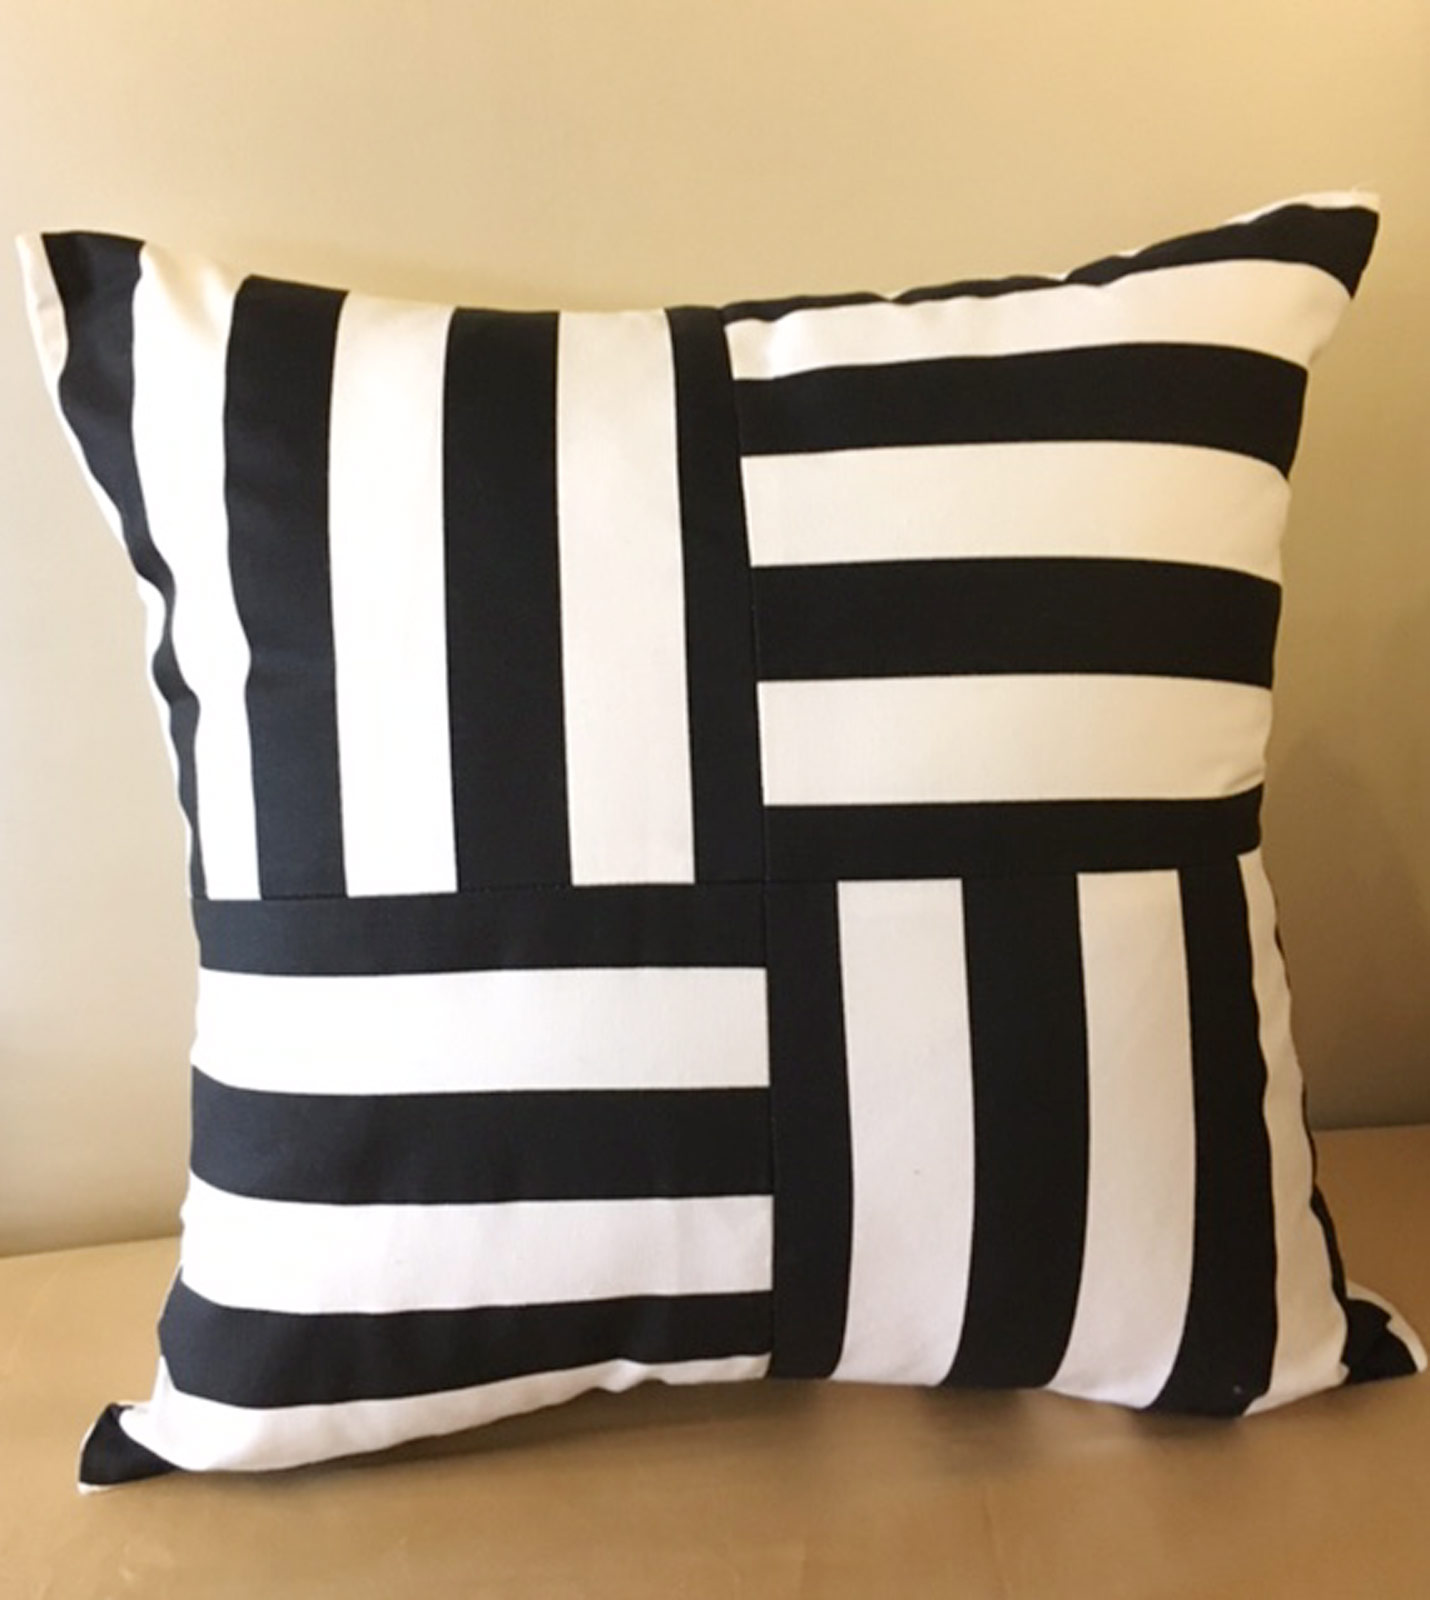 Black Throw Pillows For Bed : Luxury Bedding by Eastern Accents - Black and White Striped Decorative Pillow